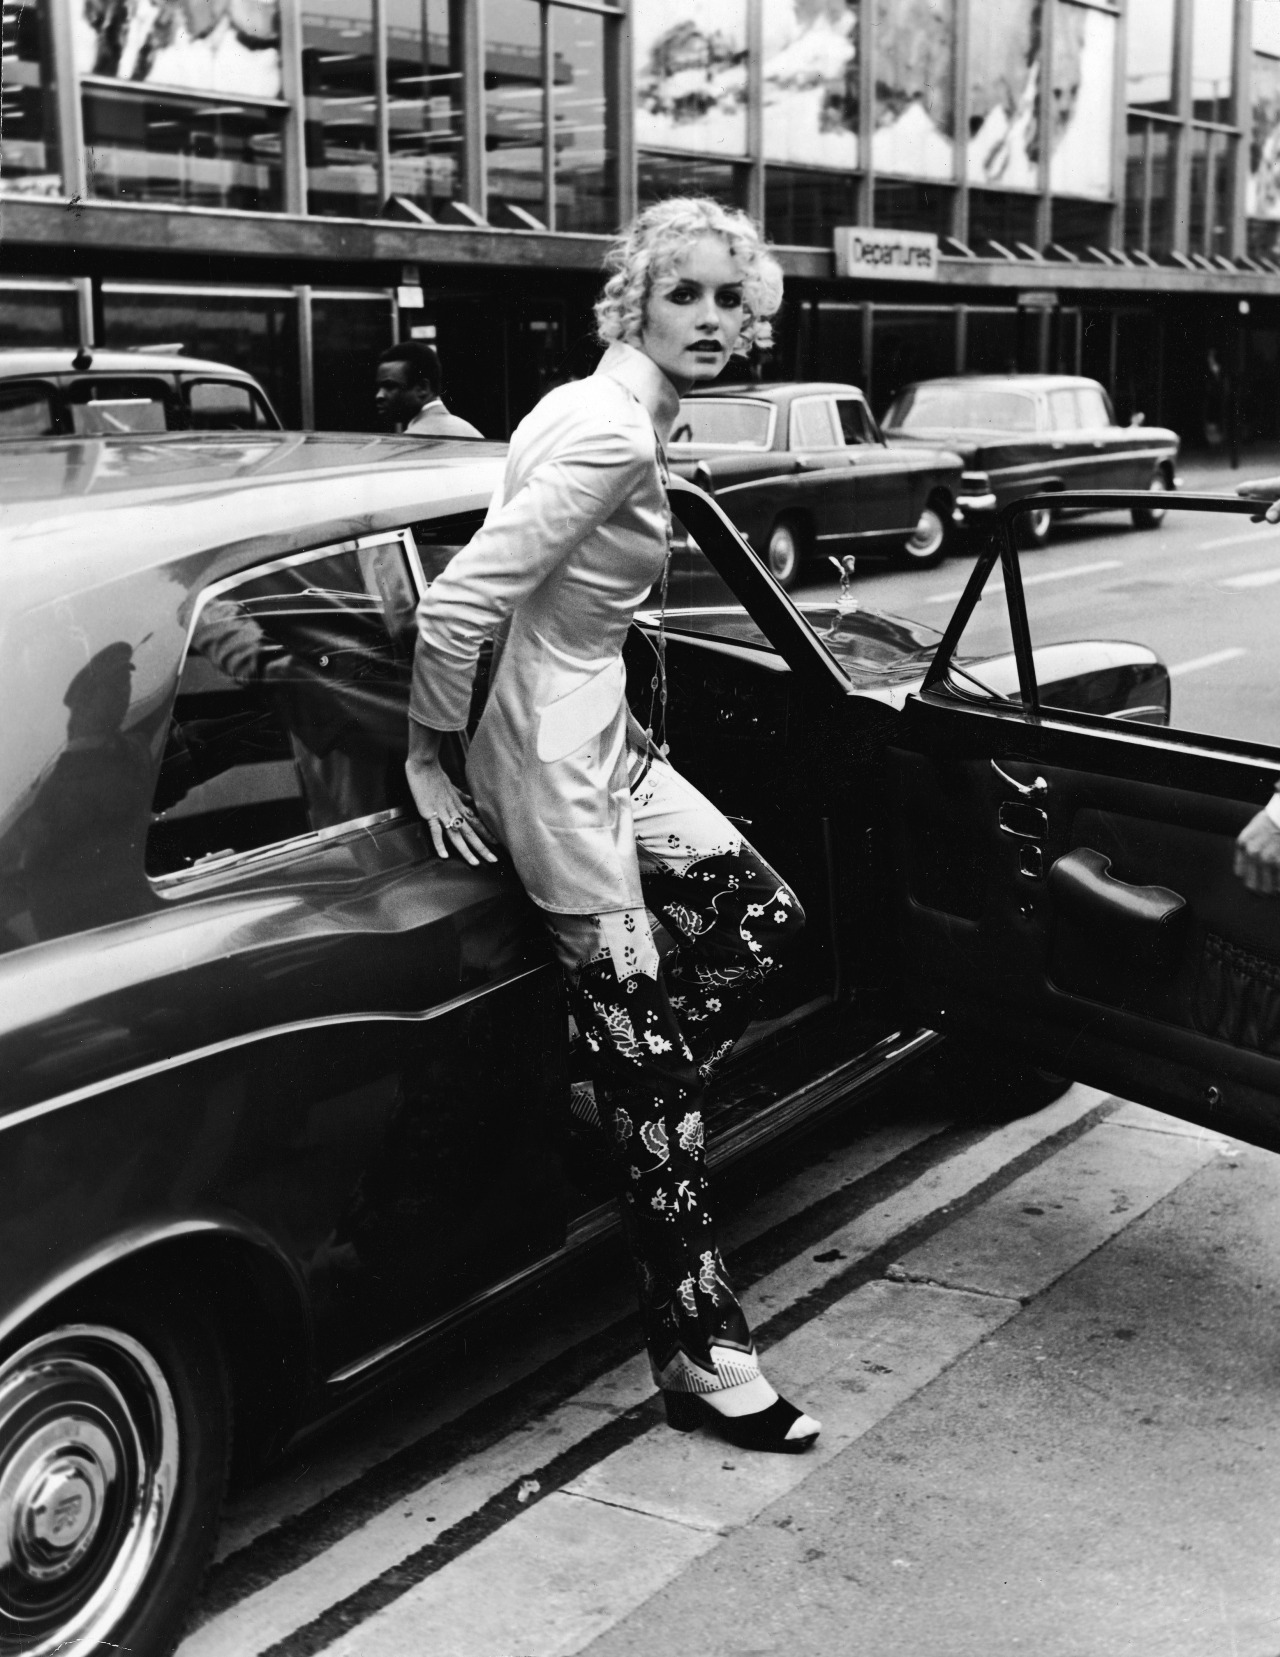 Stars & Cars: Twiggy If we had to measure the history of teen models, we think Twiggy is up there in the Top 3. Her and Penelope Tree reigned supreme in the 60's. Here's Twiggy popping out of a chic Rolls Royce in 1970. To emulate her magic dust, take a peek at the epic Rolls Royce's available on eBay (with a bid starting at $7,000 USD — no kidding).  (Photo: Courtesy of Getty Images. Text by Jauretsi)